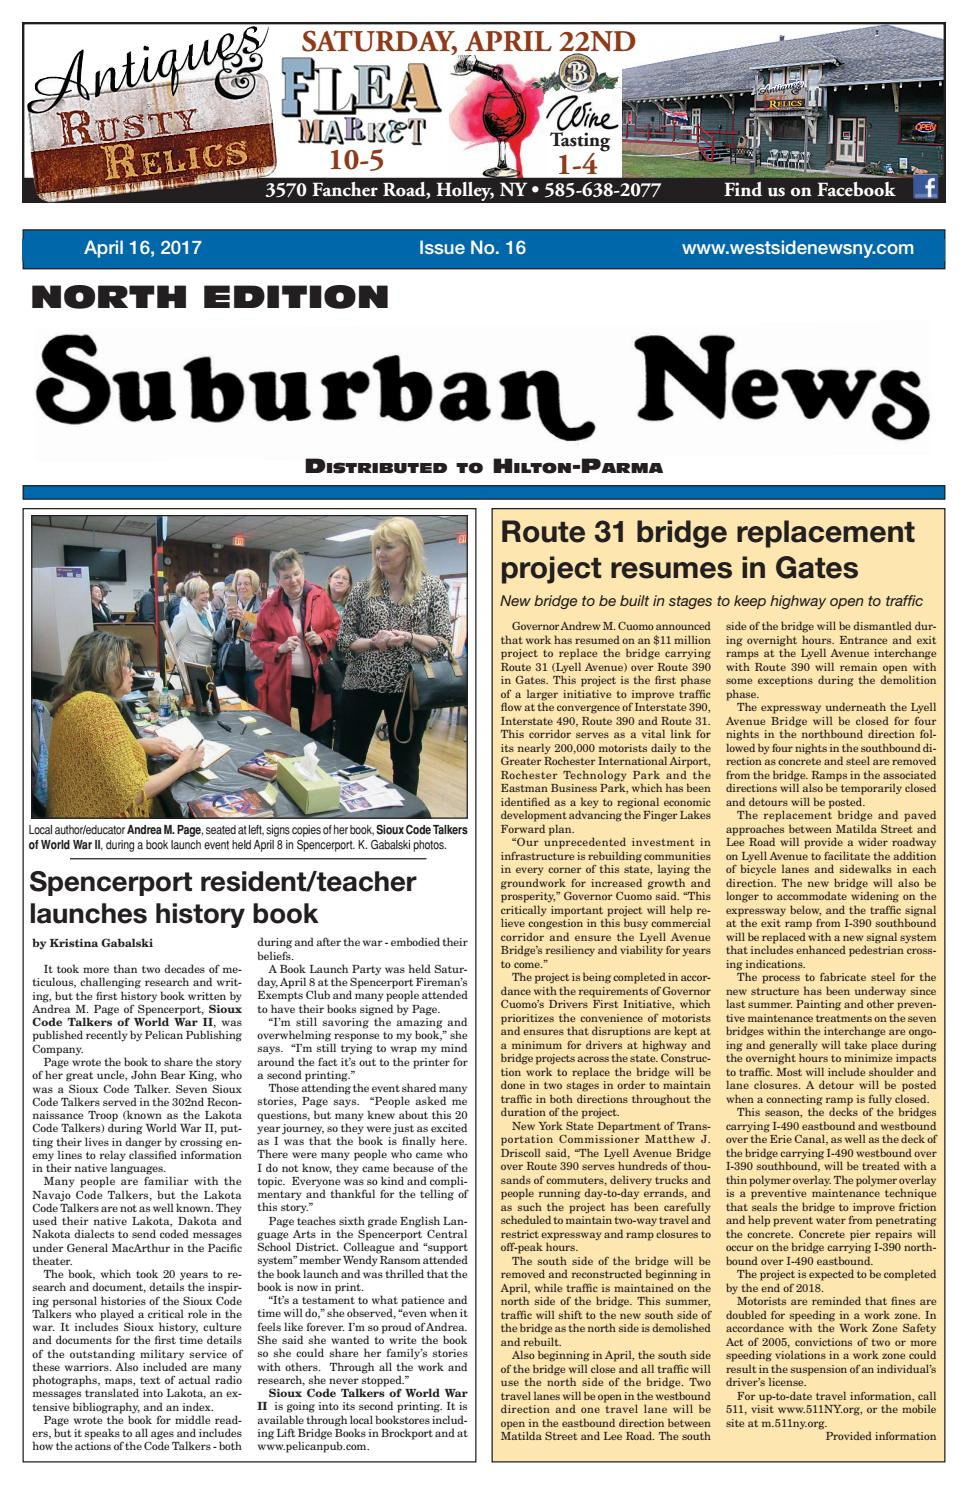 Suburban news north edition april 16 2017 by westside news inc suburban news north edition april 16 2017 by westside news inc issuu fandeluxe Gallery